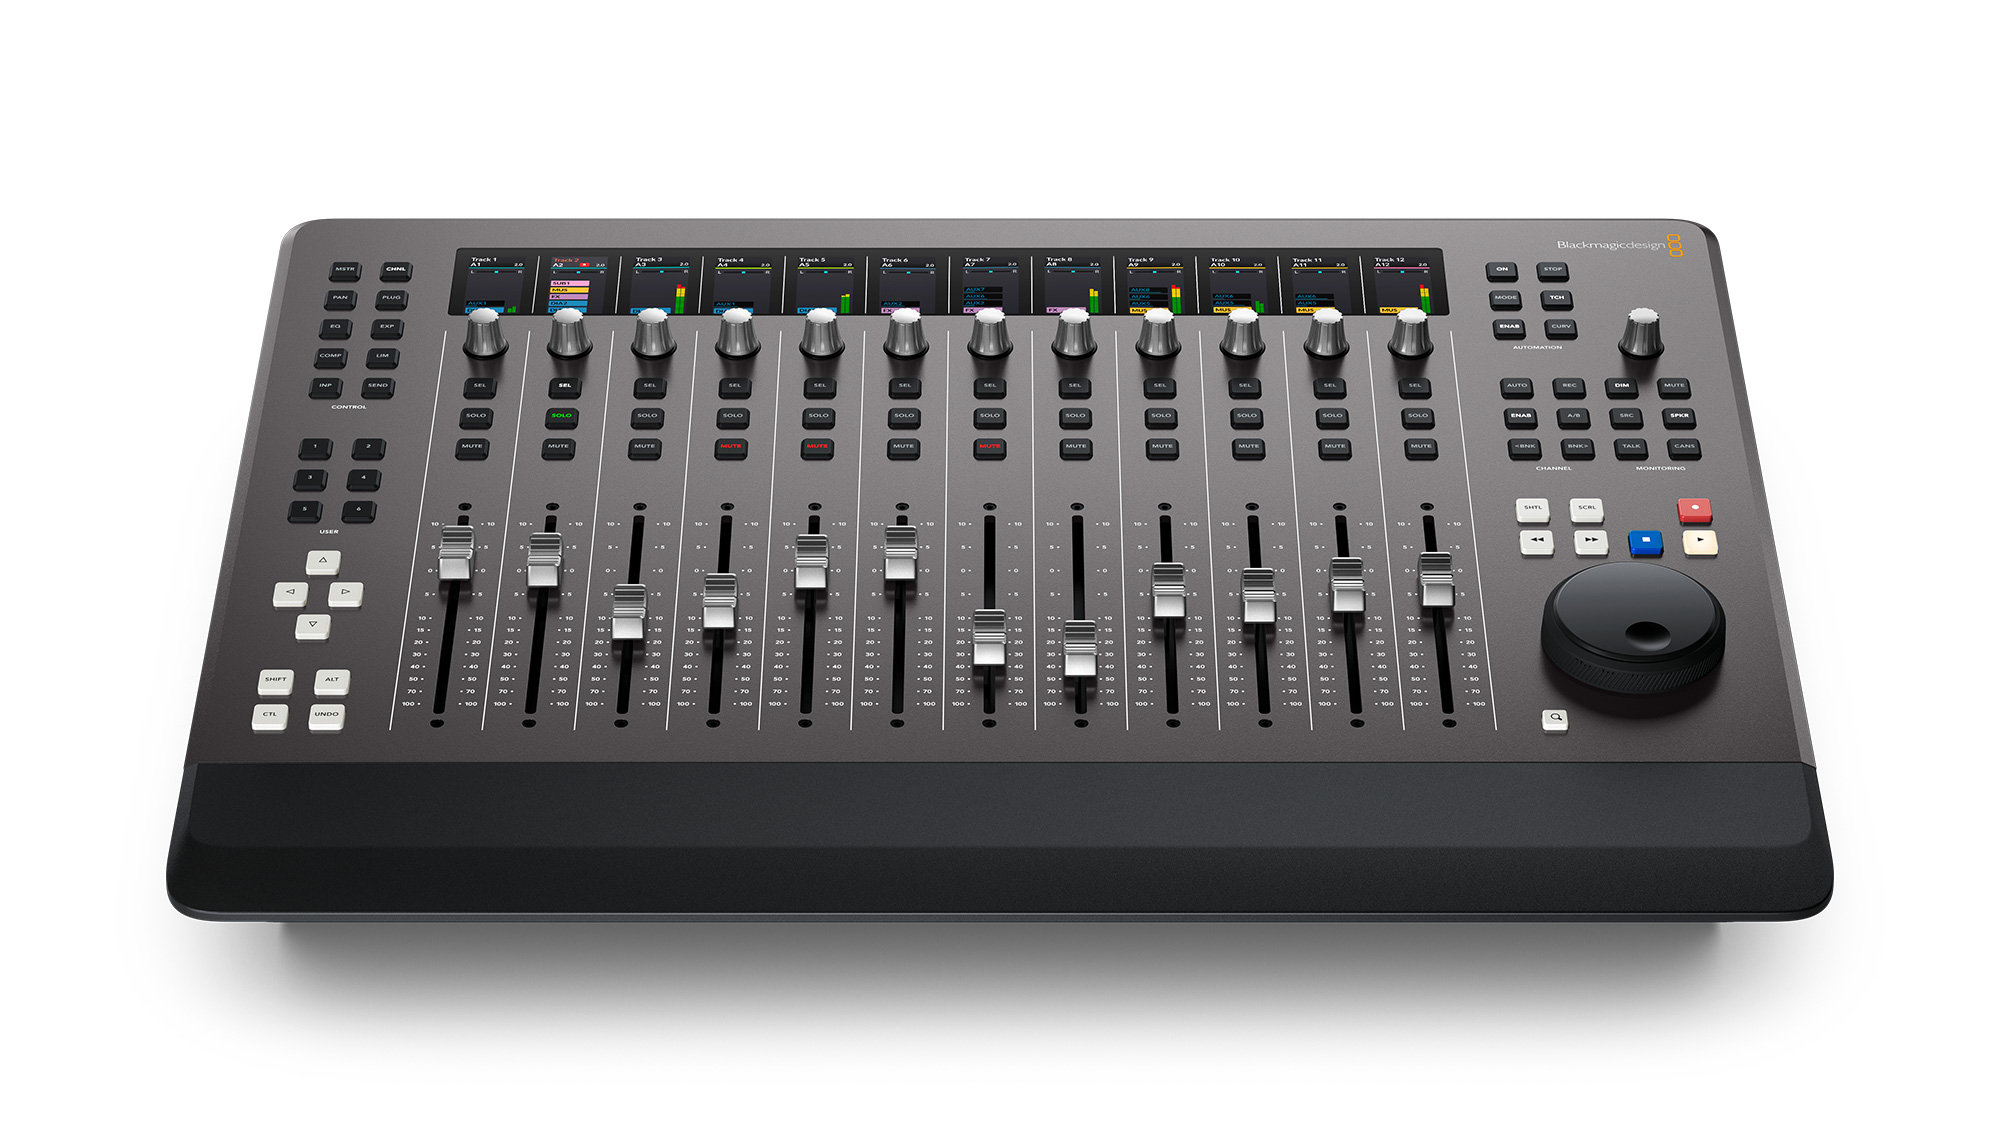 Blackmagic Design Fairlight Desktop Console: Mobile sound mixer with 12 flying faders and much more